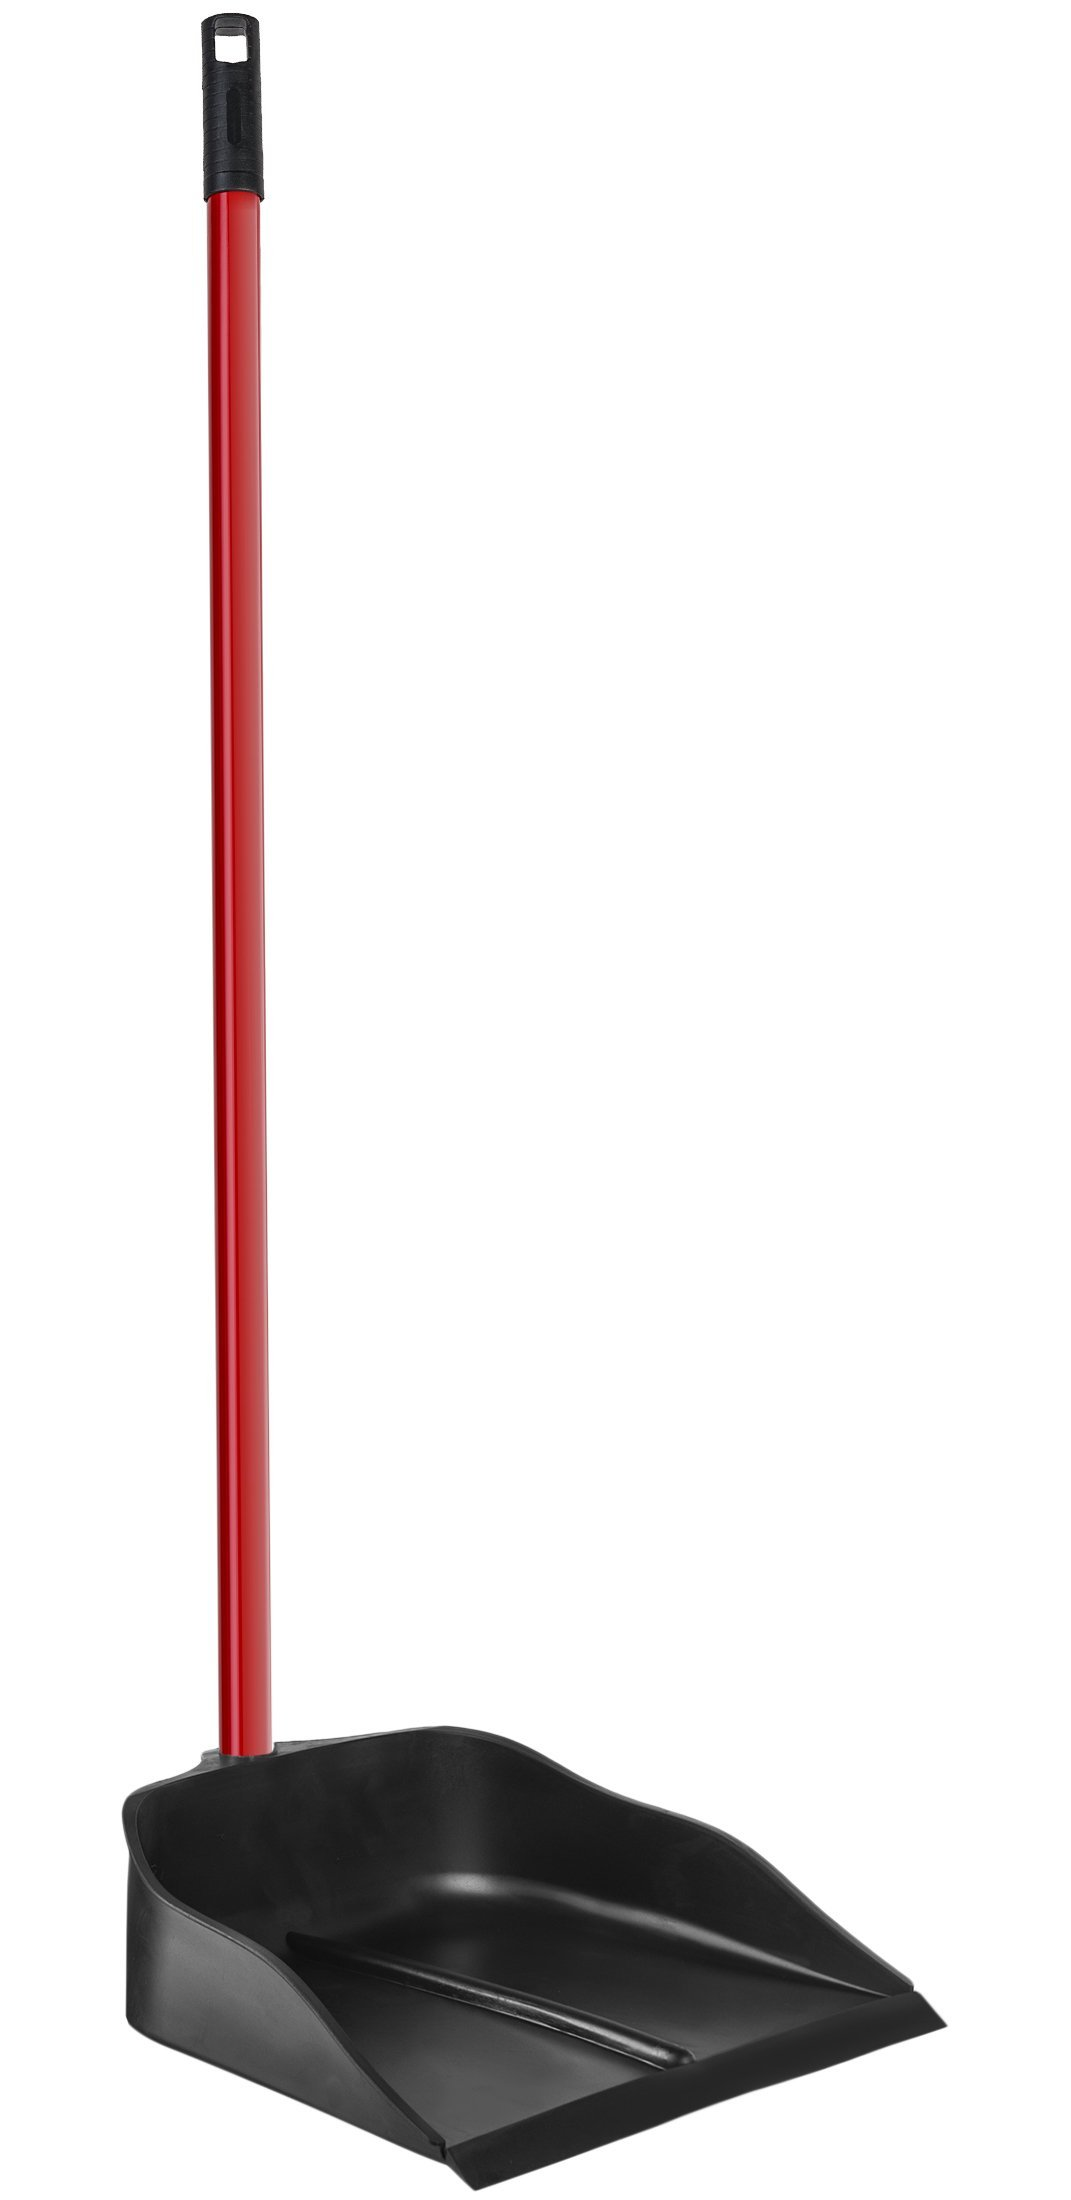 """Dustpan with Handle by Ravmag- Solid Natural Rubber Construction- 40"""" Long Handled Dust Pan- Stand Up Design- Accommodates Any Broom/ Hand Brush- Best Dustpans for Home/ Lobby/ Shop"""